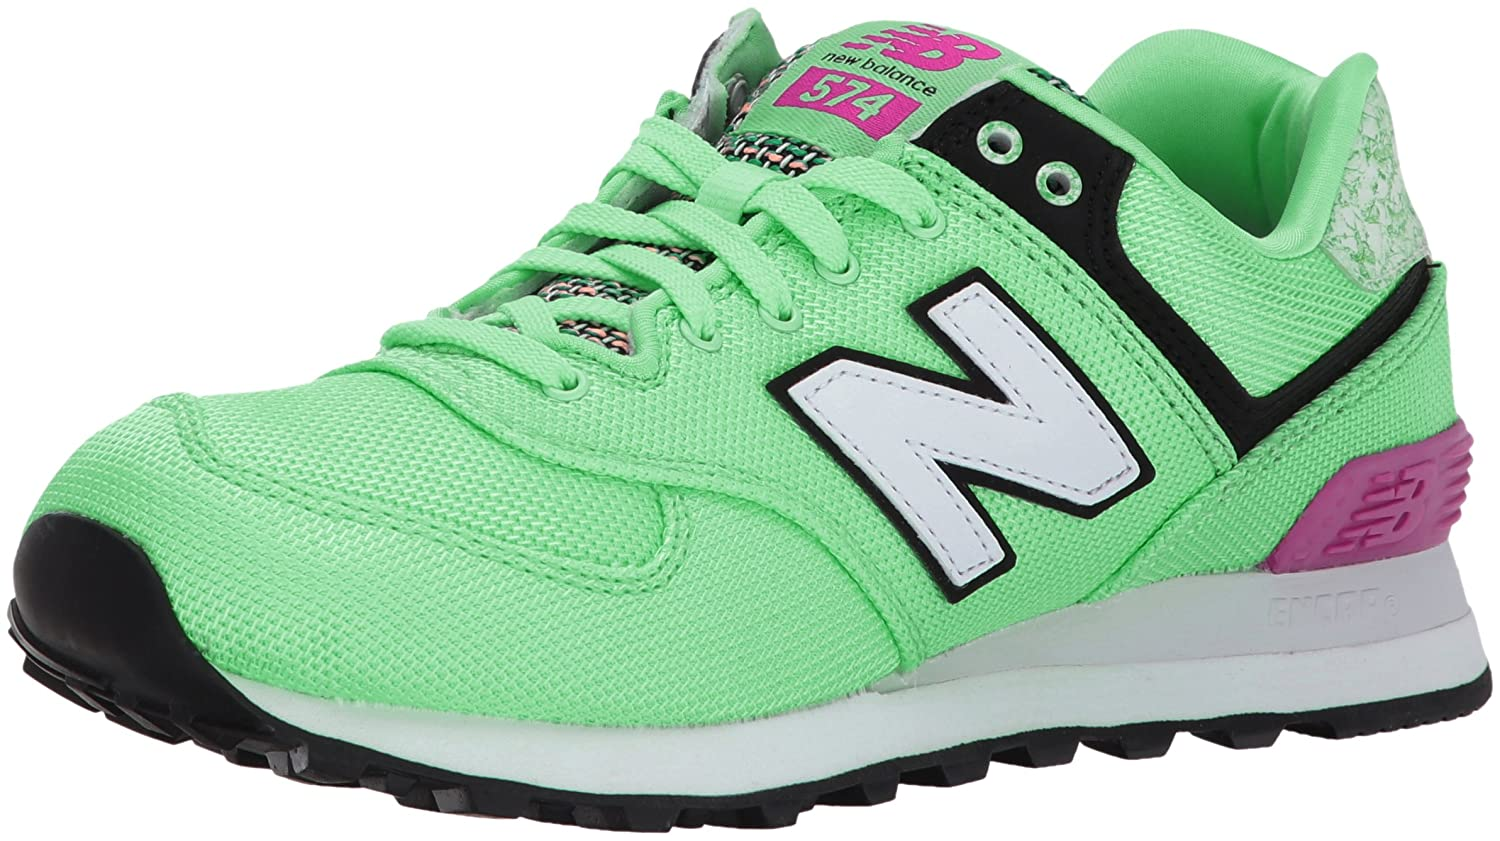 New Balance Women's 574v1 Art School Sneaker B01N1I15B4 6 B(M) US|Agave/Poisonberry